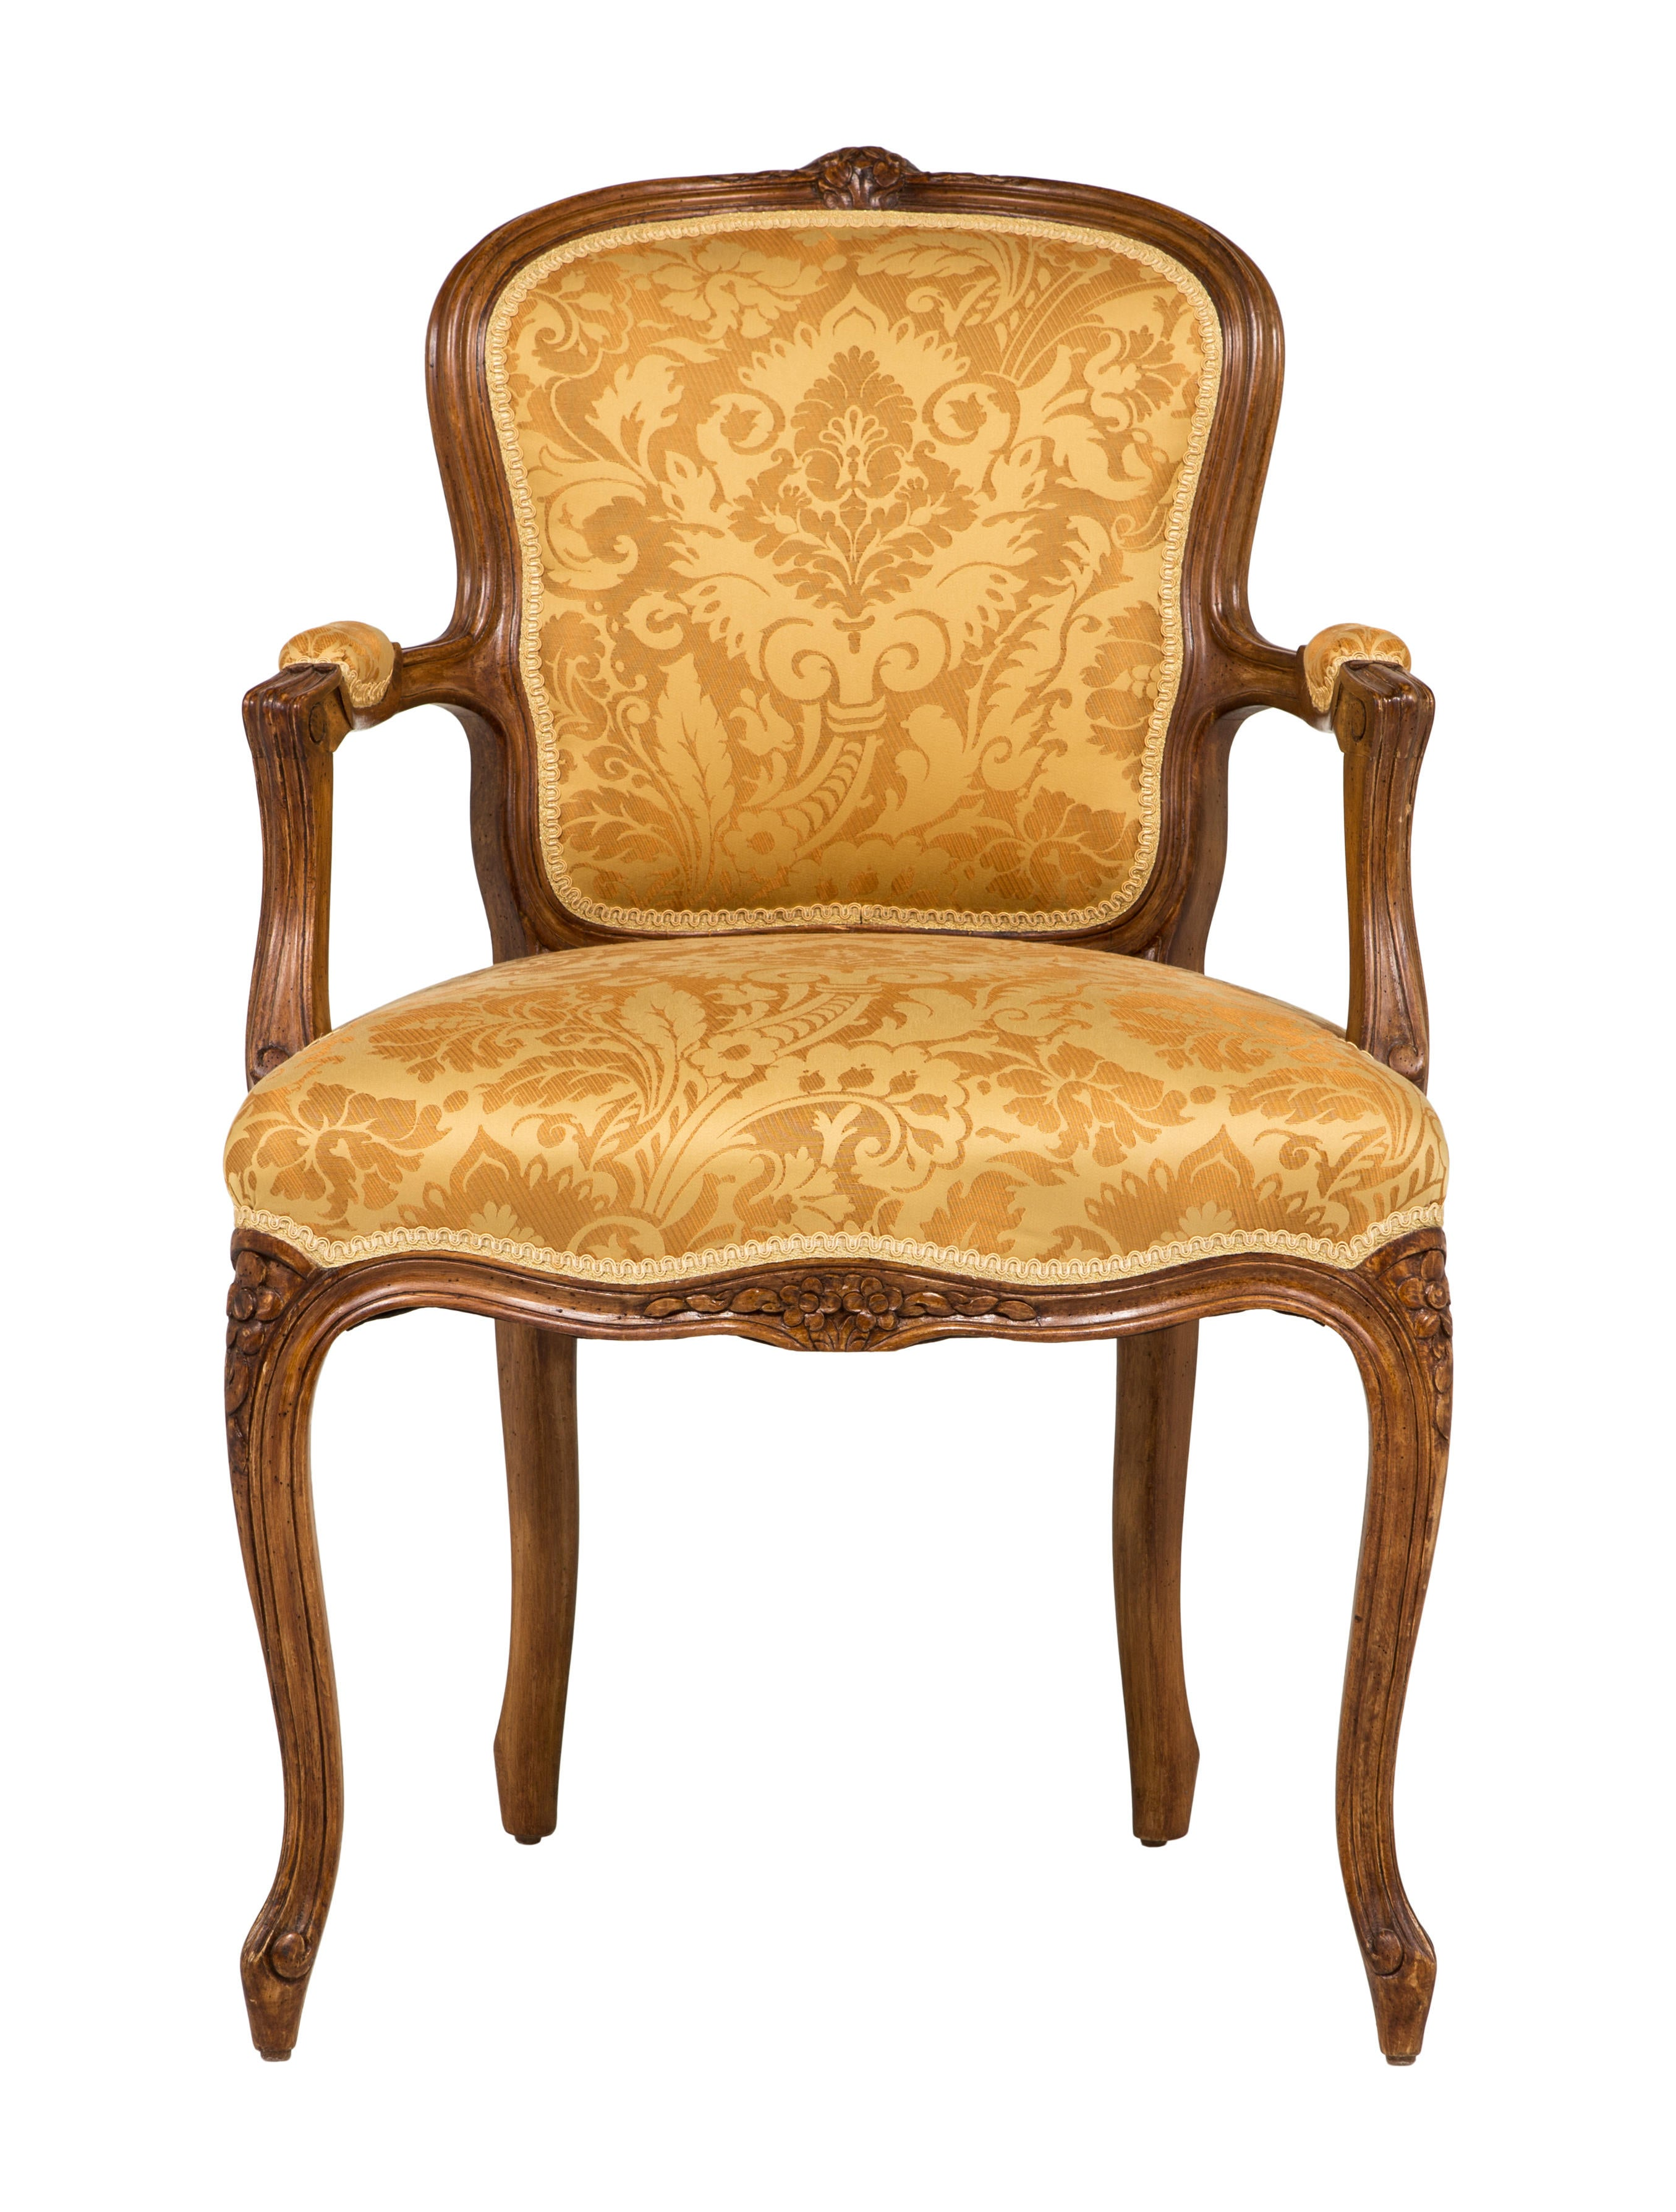 Pair of Louis XV Rococo Chairs Furniture CHAIR